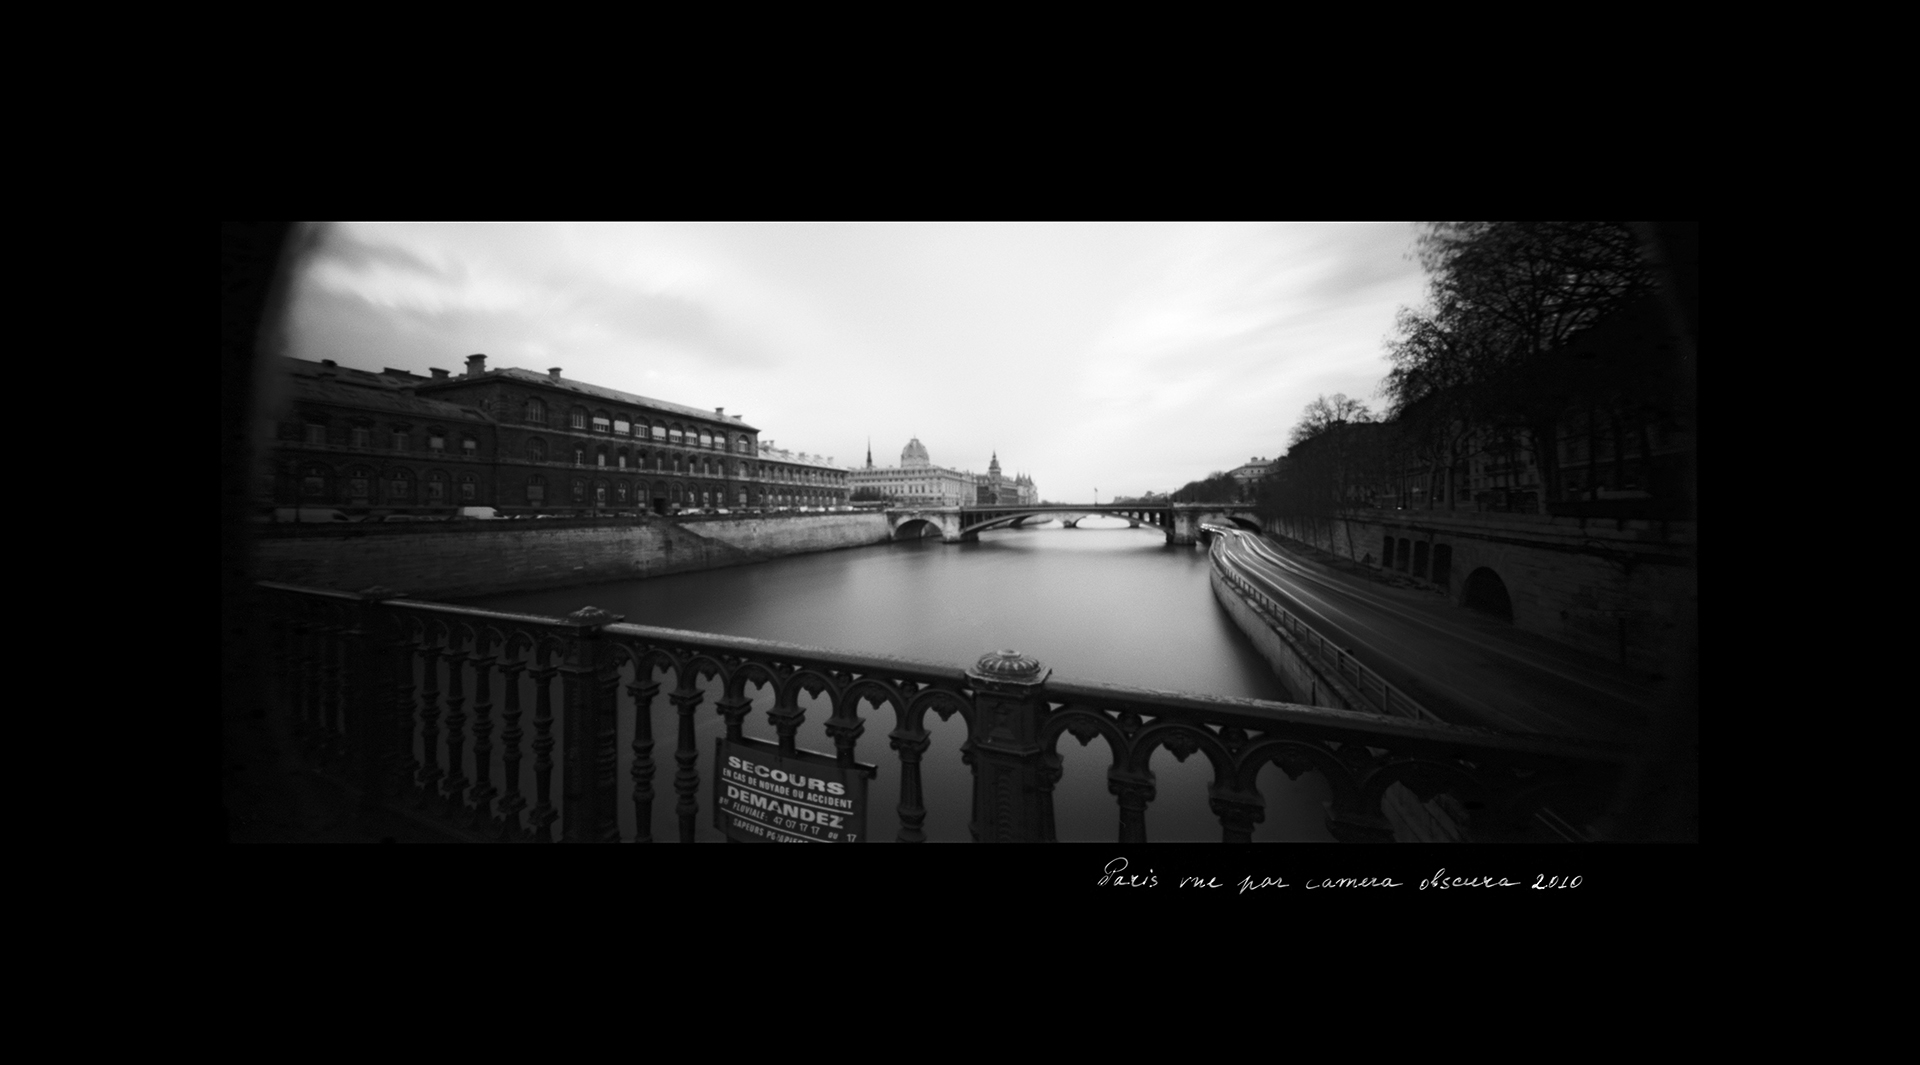 Paris vu par camera obscura11